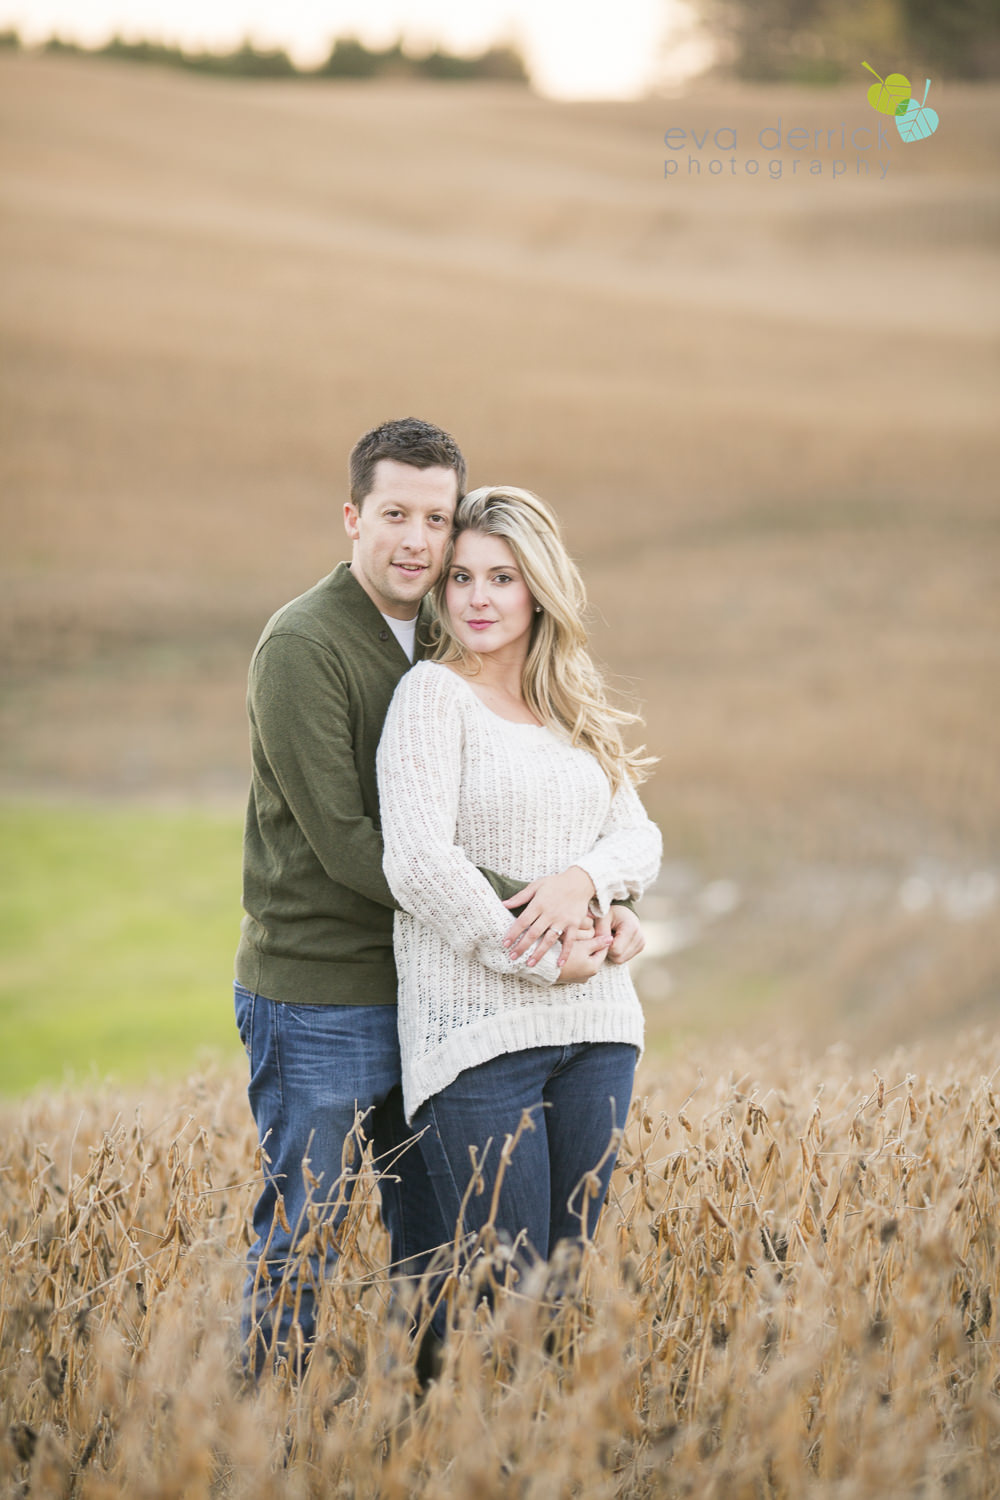 Albion-Hills-Photographer-Engagement-Session-Alanna-Matt-photography-by-Eva-Derrick-Photography-027.JPG